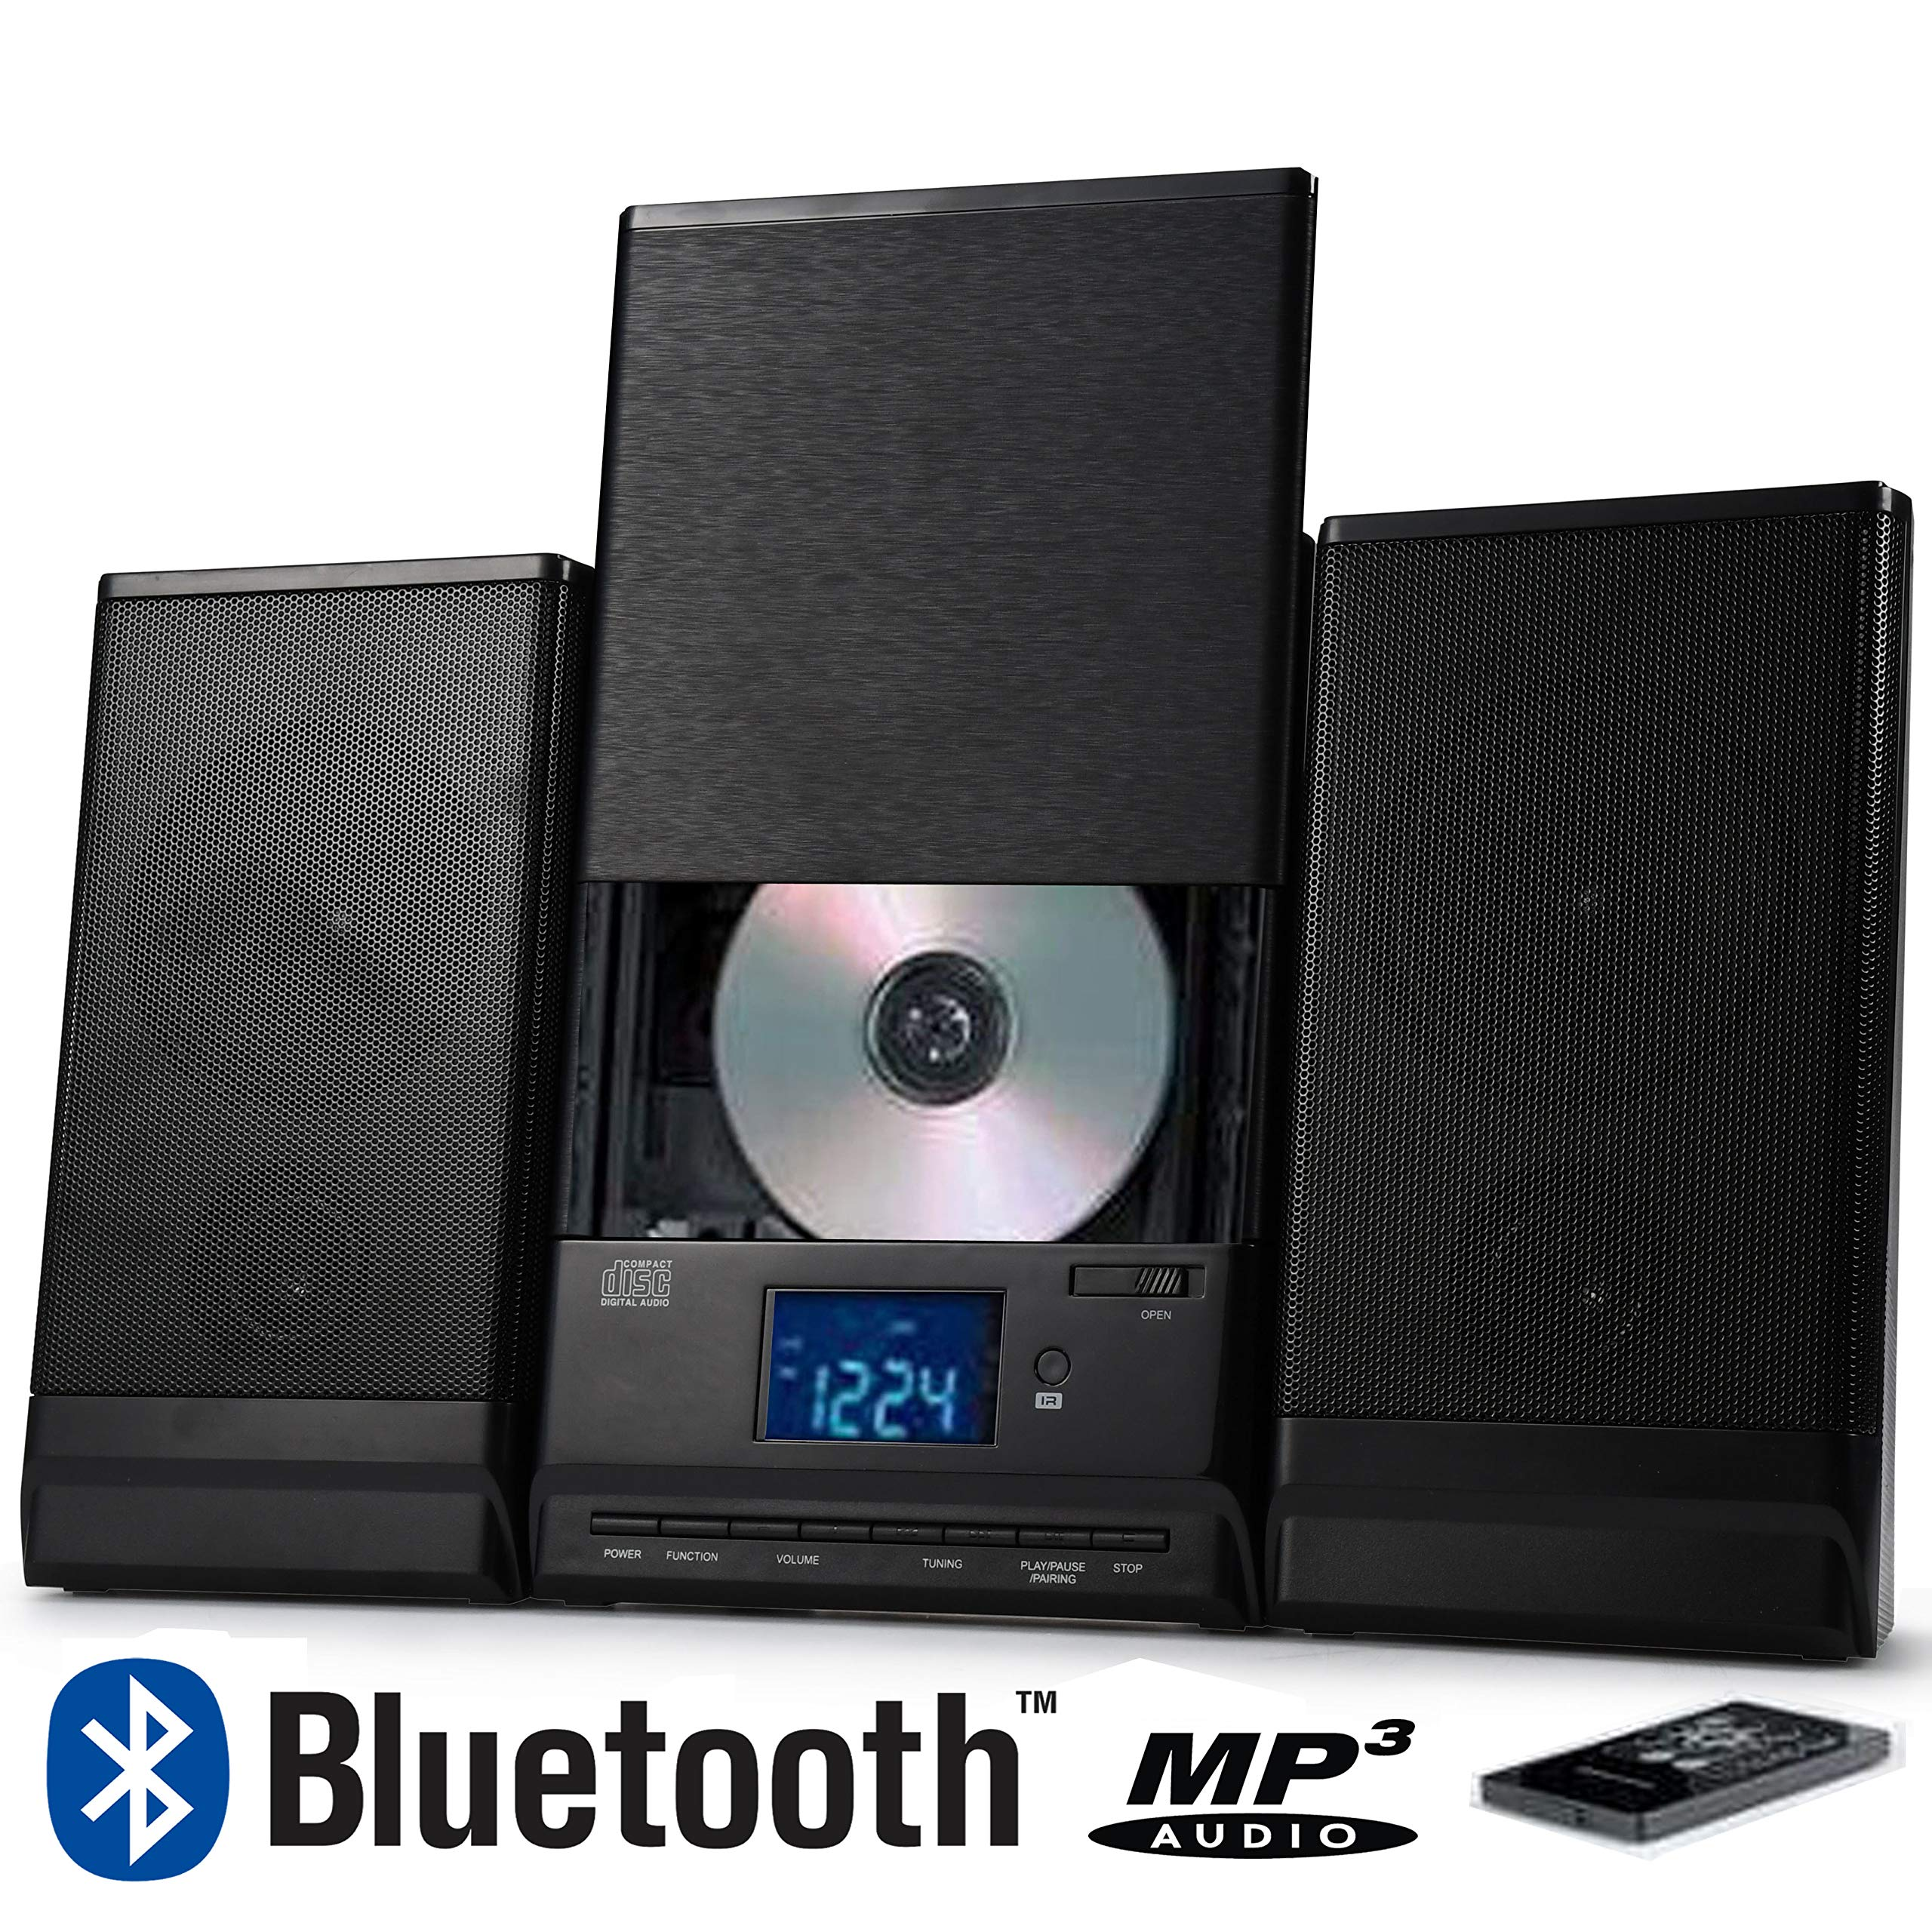 ONN Bluetooth ONA-015 B Audio Compact Home CD Music Shelf System Vertical-Loading with Stereo Dynamic Speakers - Refurbished